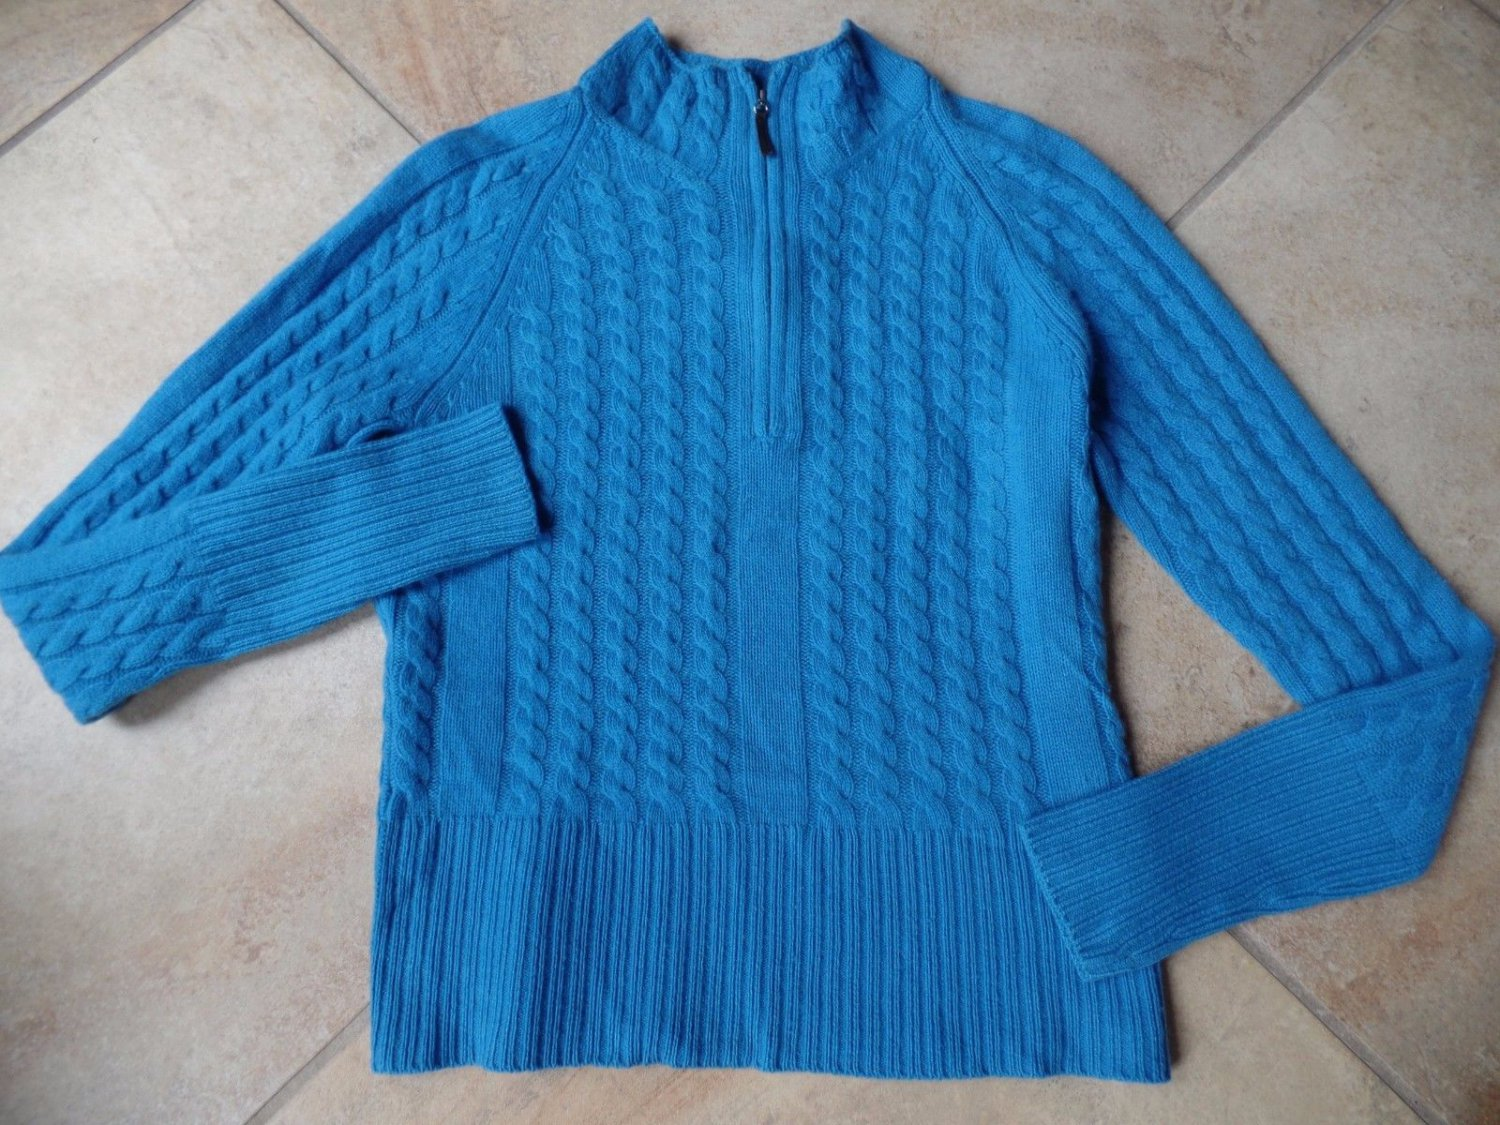 Belford Saks Fifth Avenue Turquoise 100% Cashmere Cable Knit Ski Sweater L